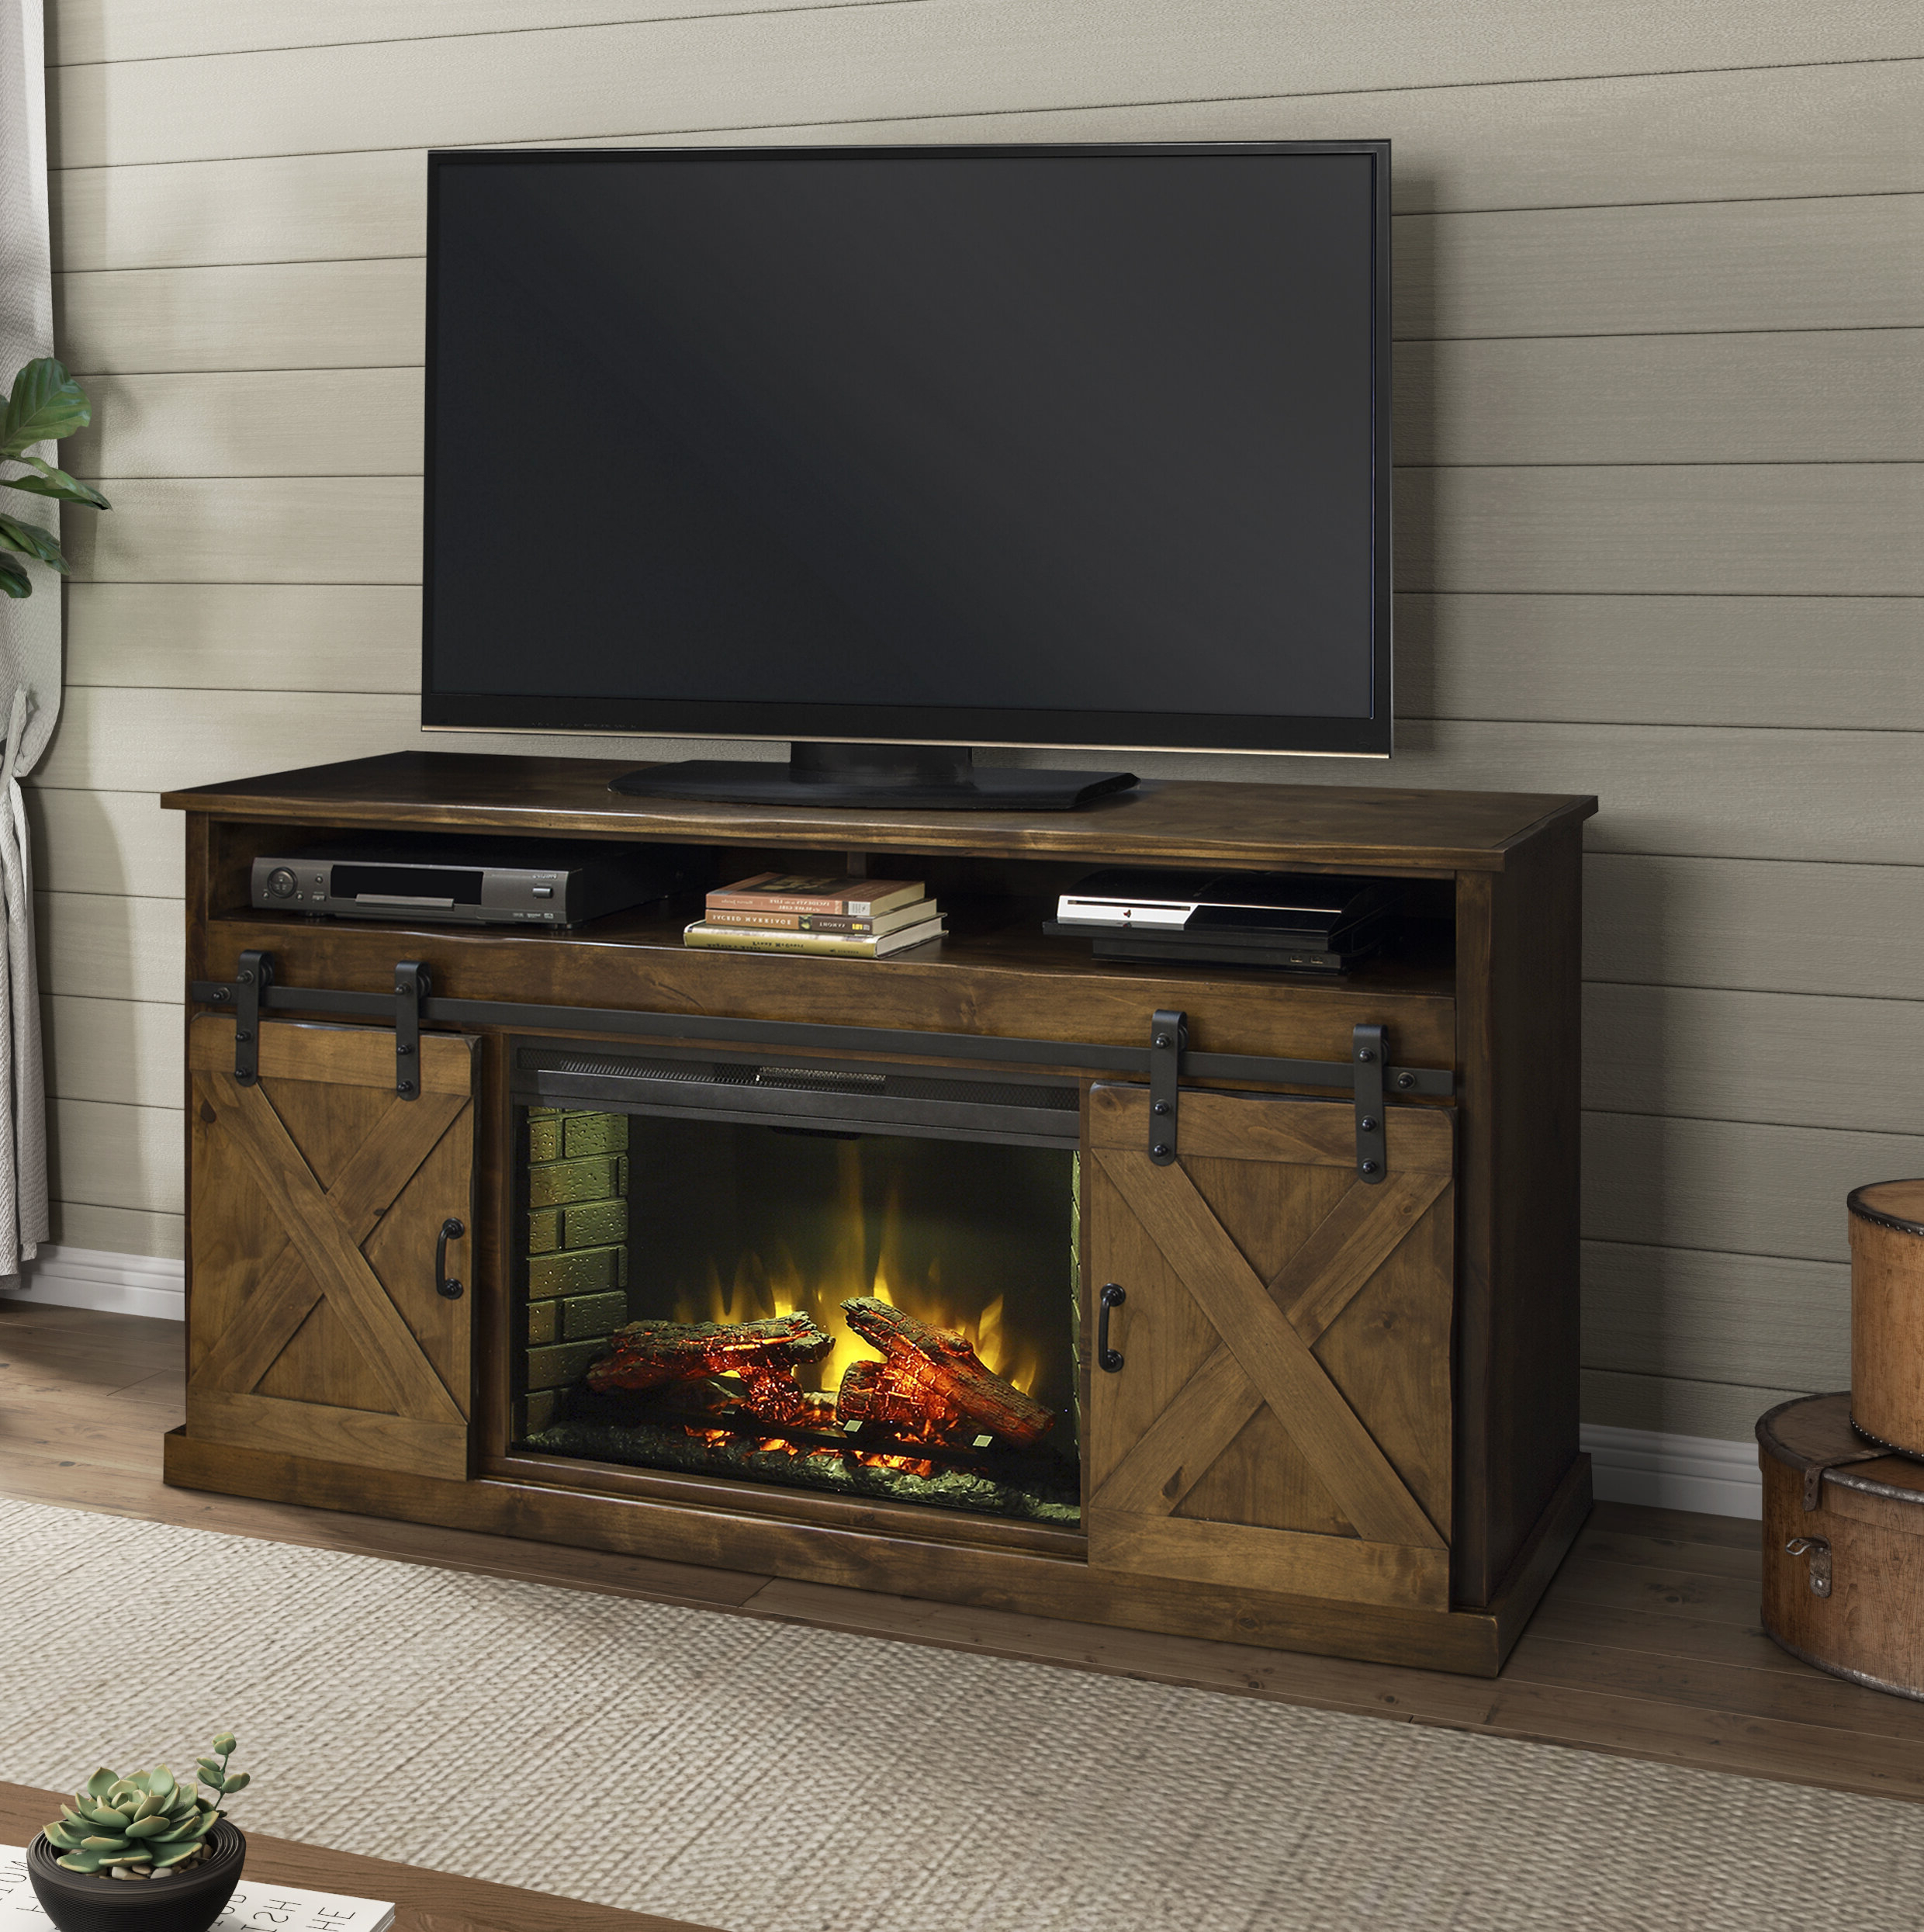 """Betton Tv Stands For Tvs Up To 65"""" For Widely Used 65 Inch Tv Stand With Fireplace (View 14 of 25)"""